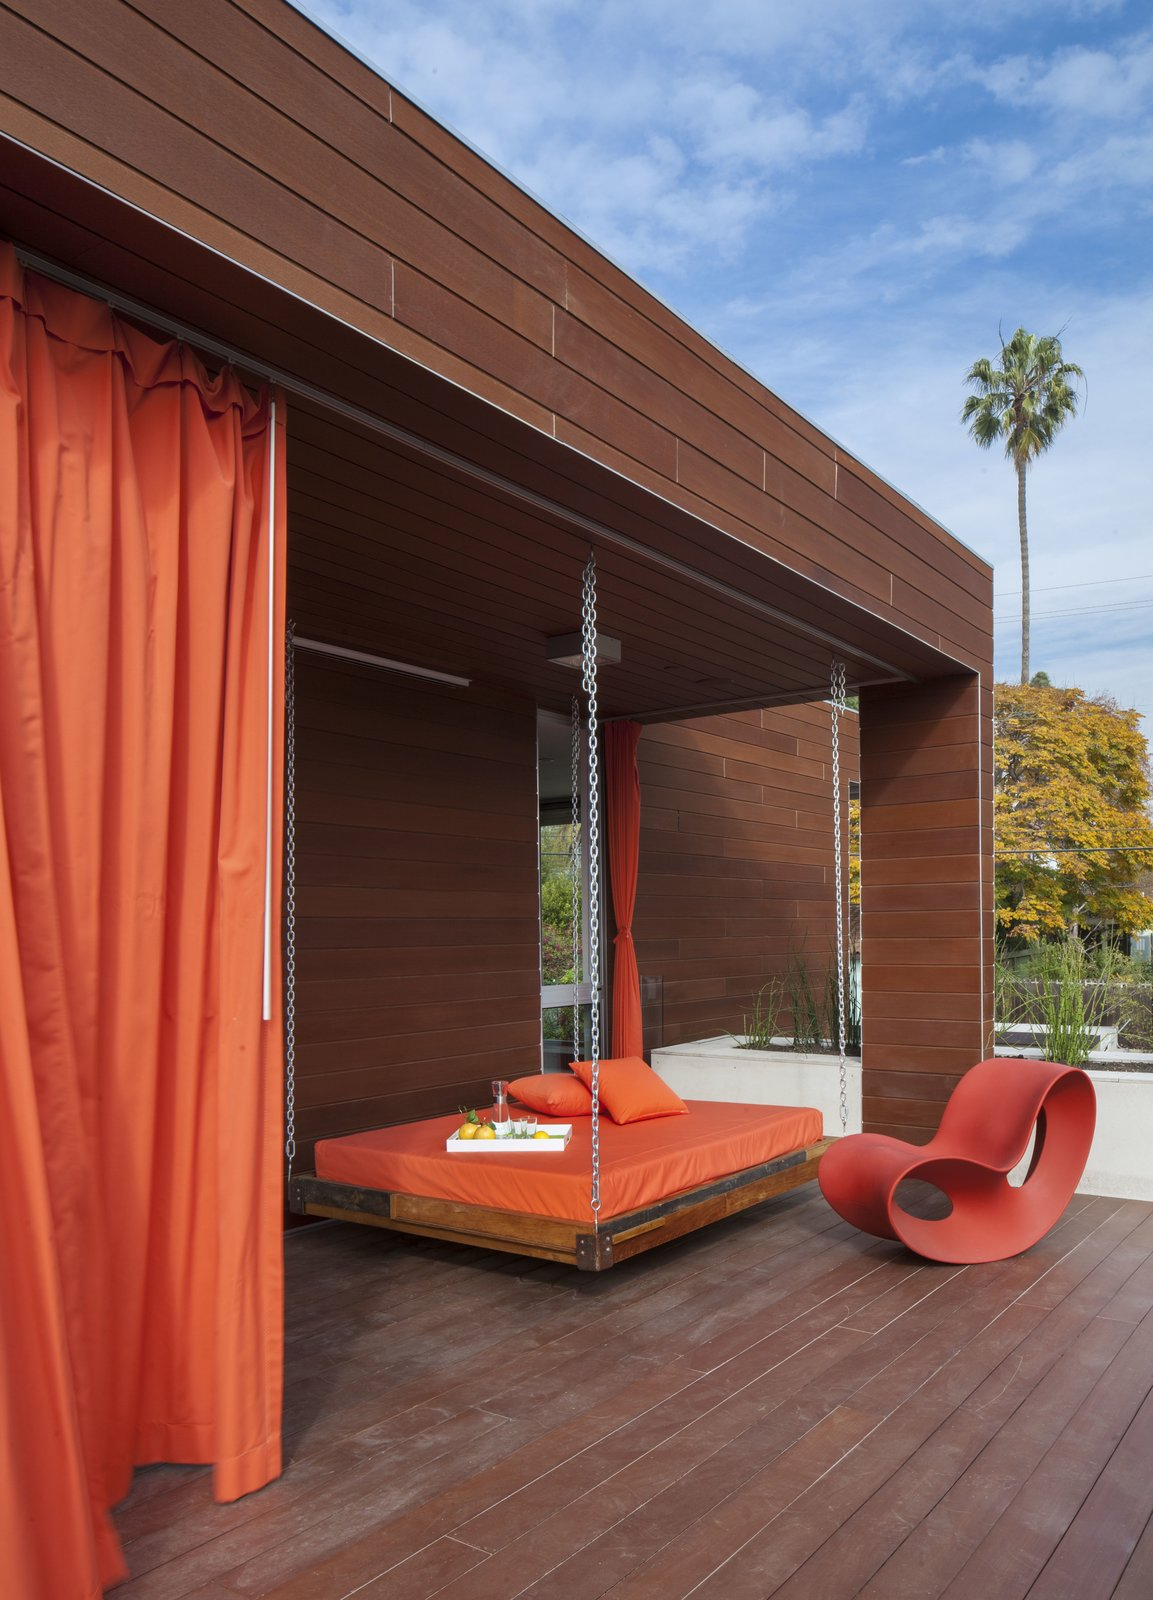 Outdoor, Large Patio, Porch, Deck, Back Yard, Hanging Lighting, Wood Fences, Wall, Wood Patio, Porch, Deck, Trees, and Horizontal Fences, Wall An outdoor swing bed makes the most of sunny, Santa Monica weather.  Dawnsknoll by Minarc